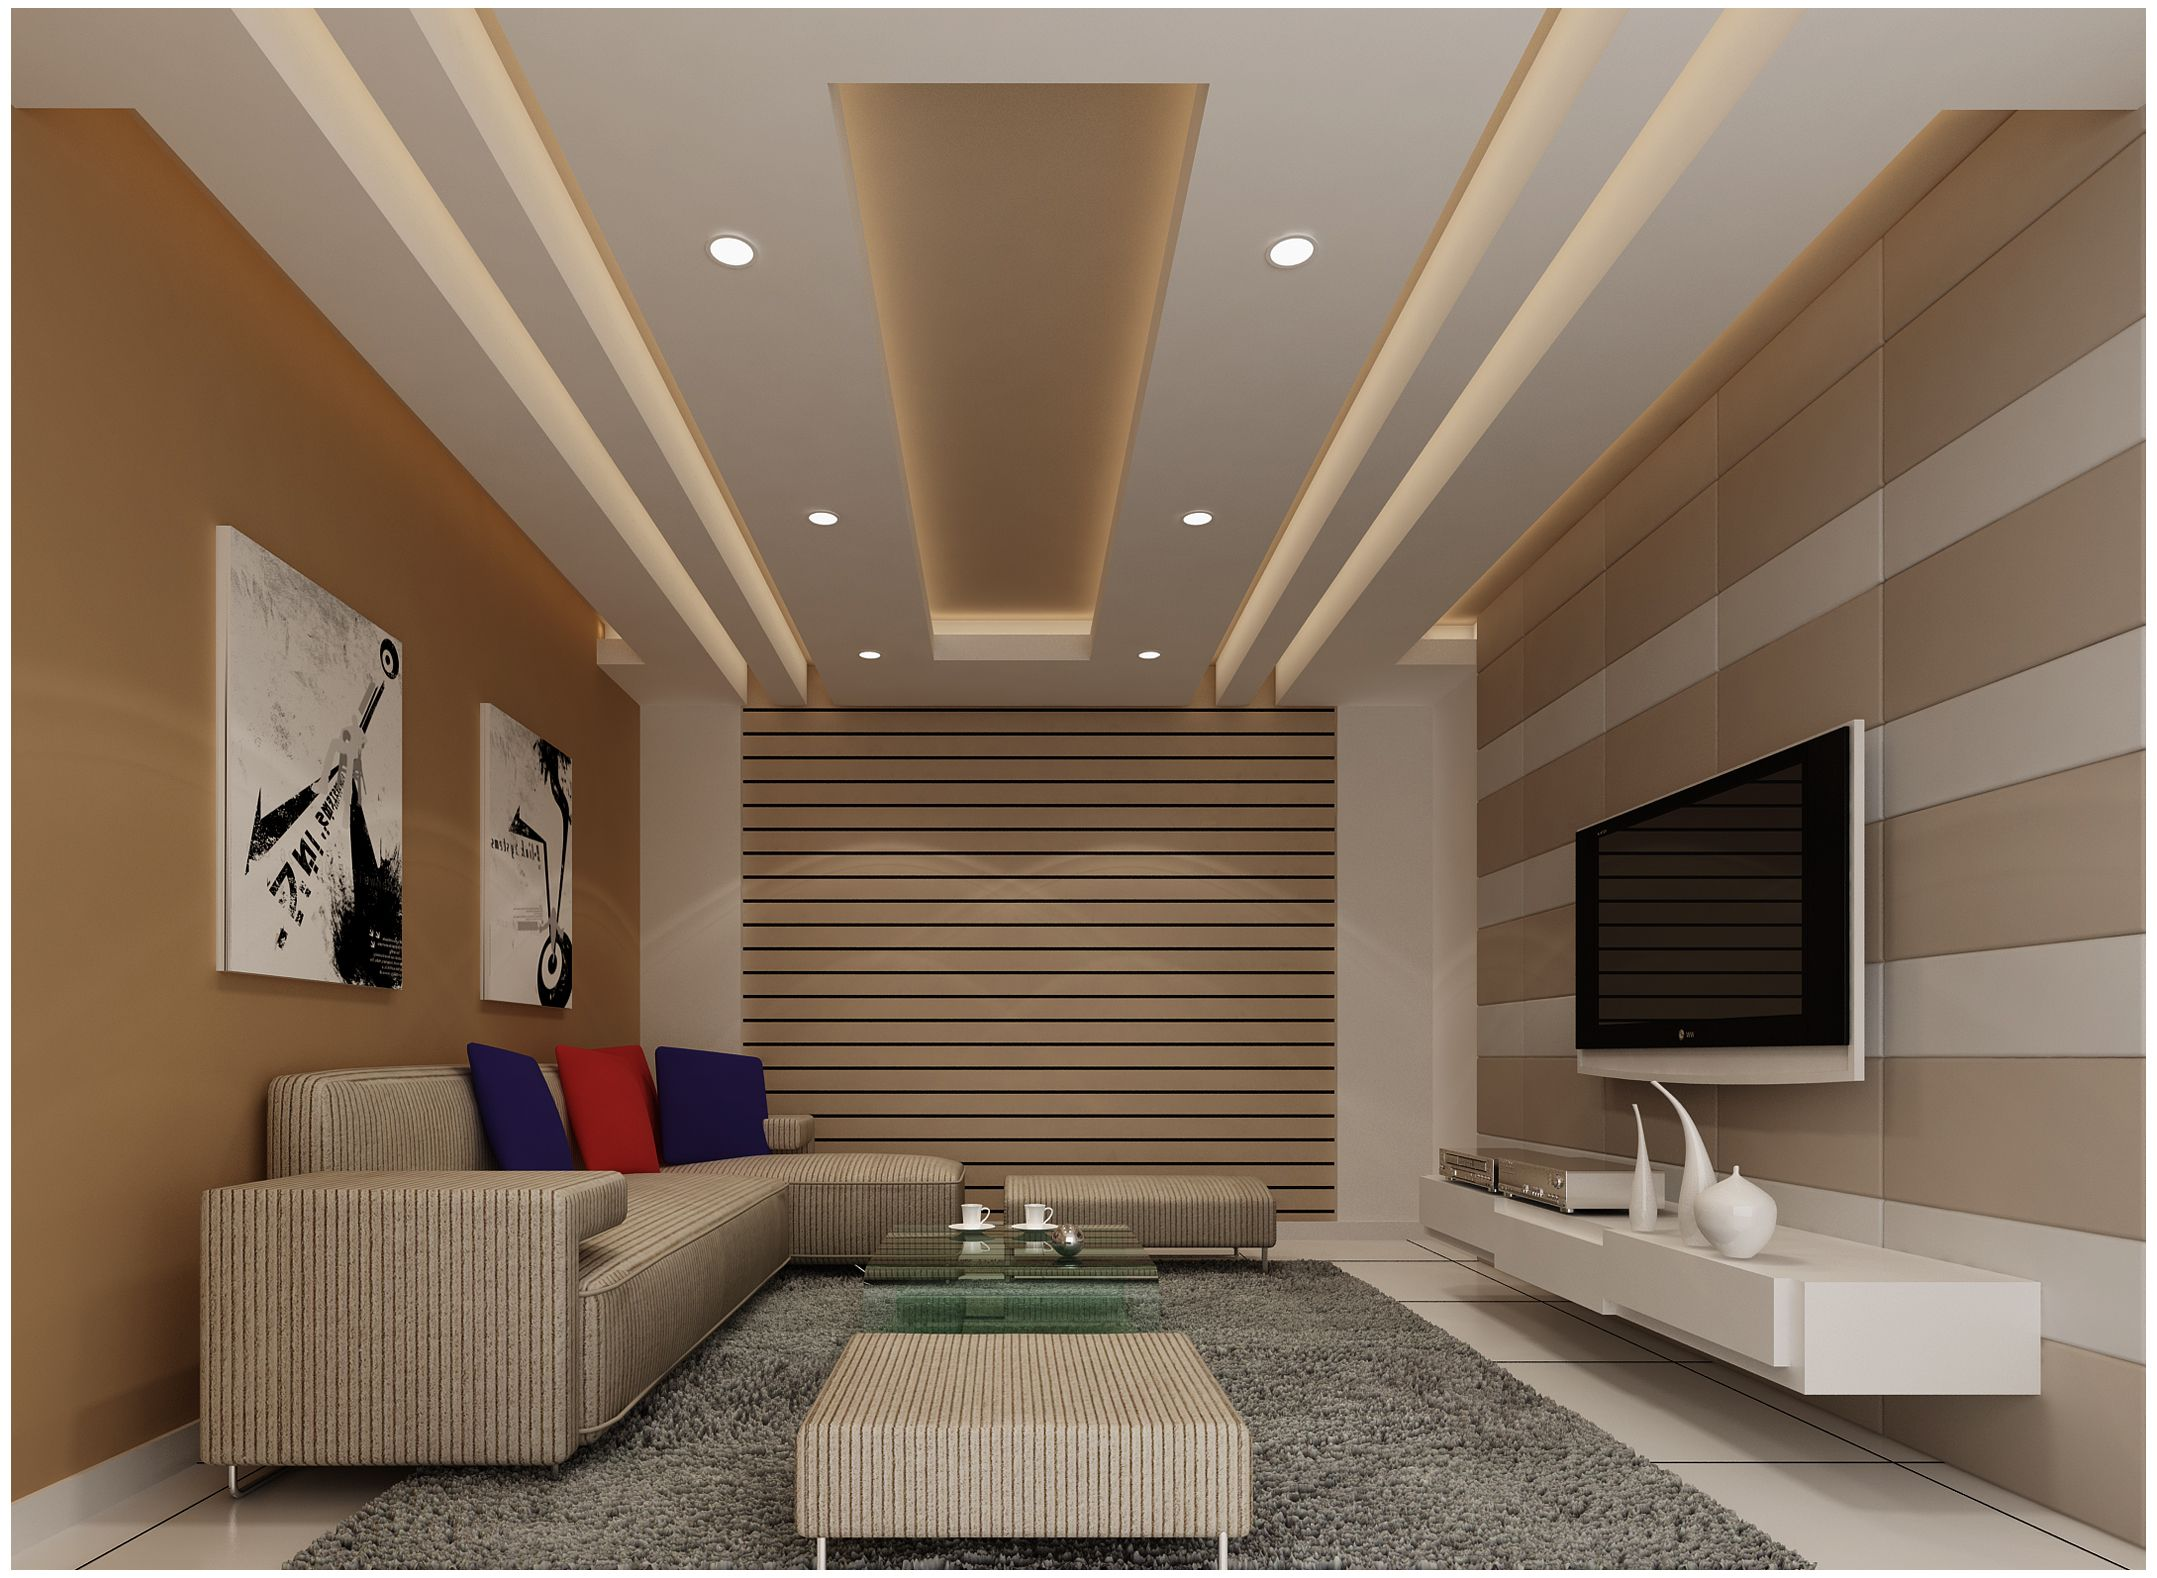 Choose The Array Of Classy, Cheerful, Adventurous And Artistic Ceiling  Designs To Add Finesse To Your Living Room And Create An Enviable First  Impression Part 66